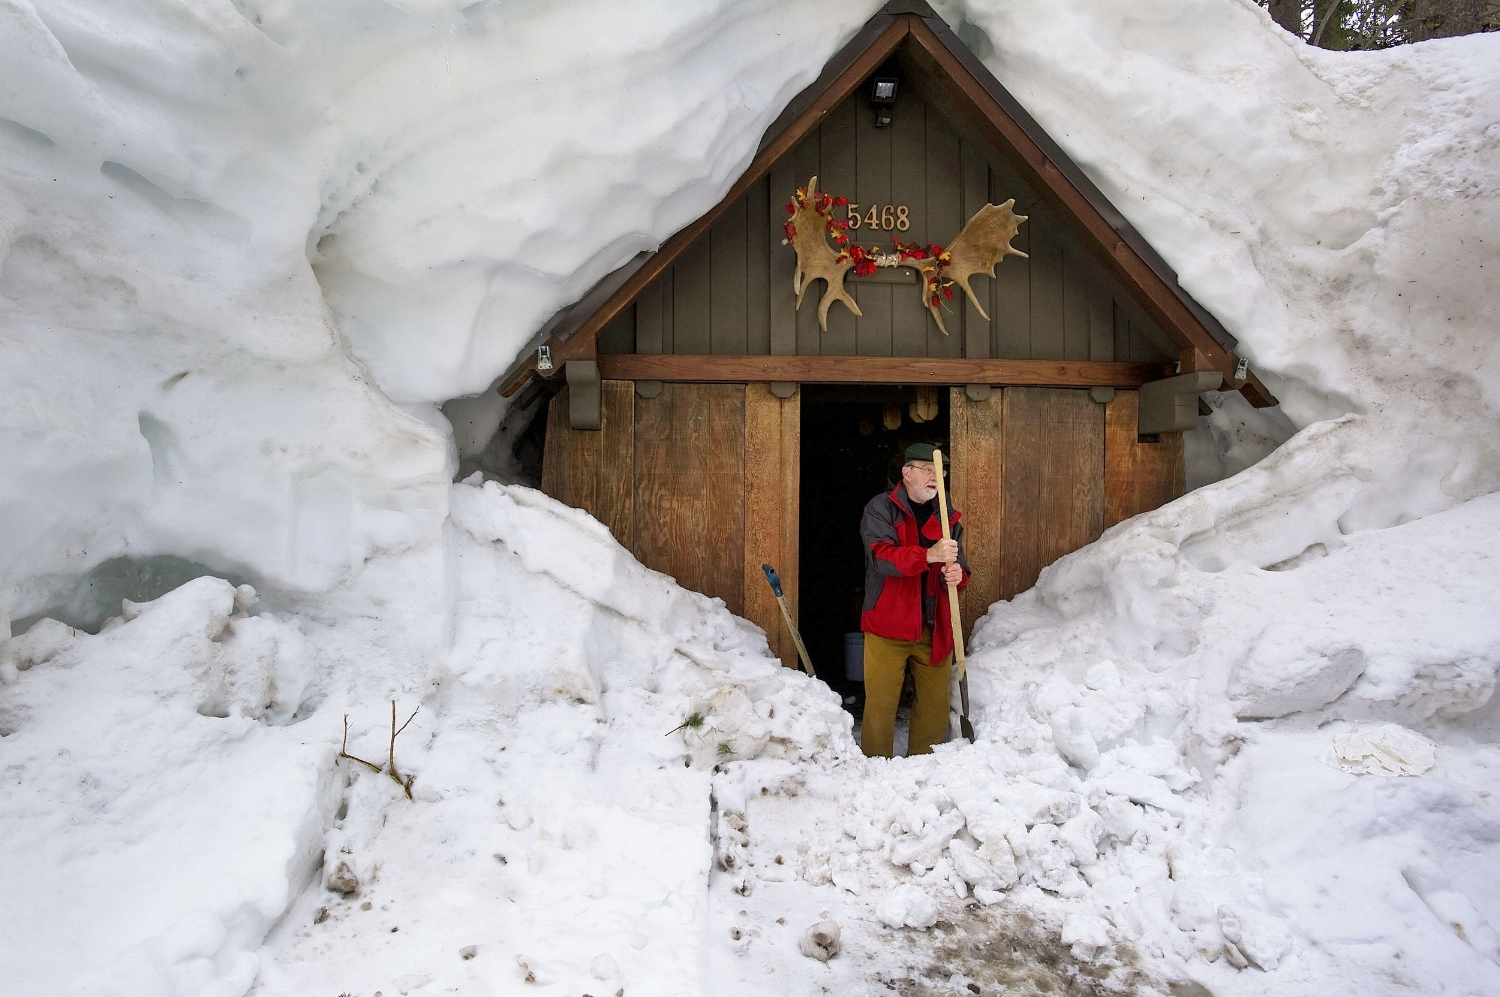 Cliff Raisbeck prepares to clear snow from in front of his front door at Serene Lakes near Truckee on Monday, April 11, 2011.